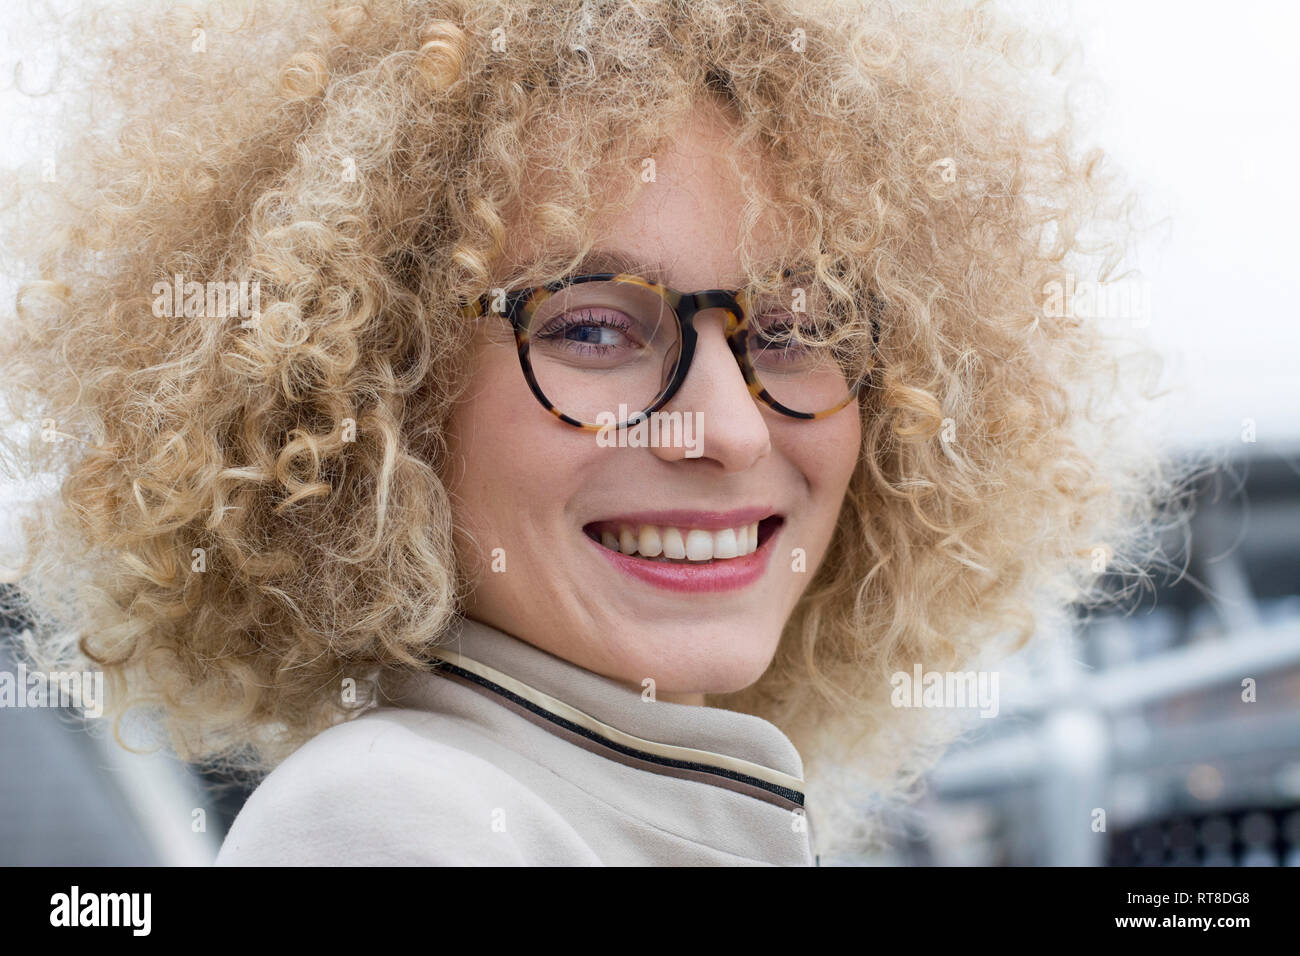 Portrait of smiling blond woman with ringlets wearing fashionable glasses Stock Photo